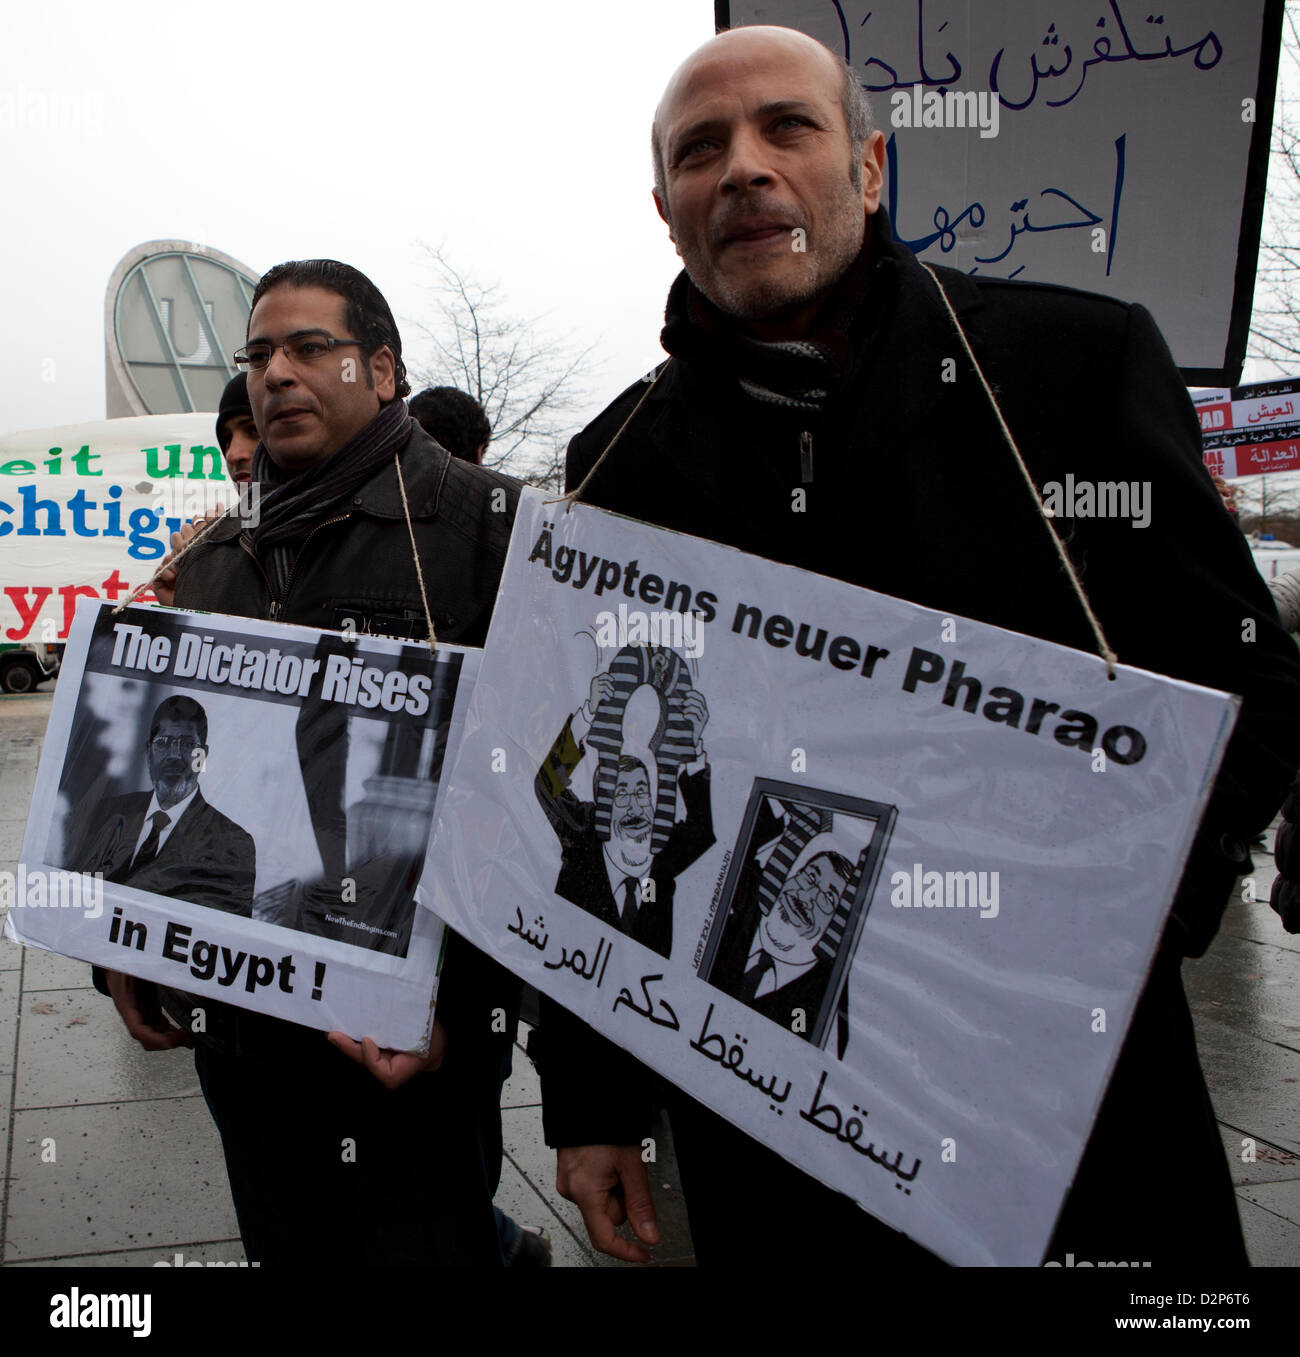 Berlin, Germany. 30th January 2013. Anti-Morsi protesters in front of the German chancellery during the visit of - Stock Image